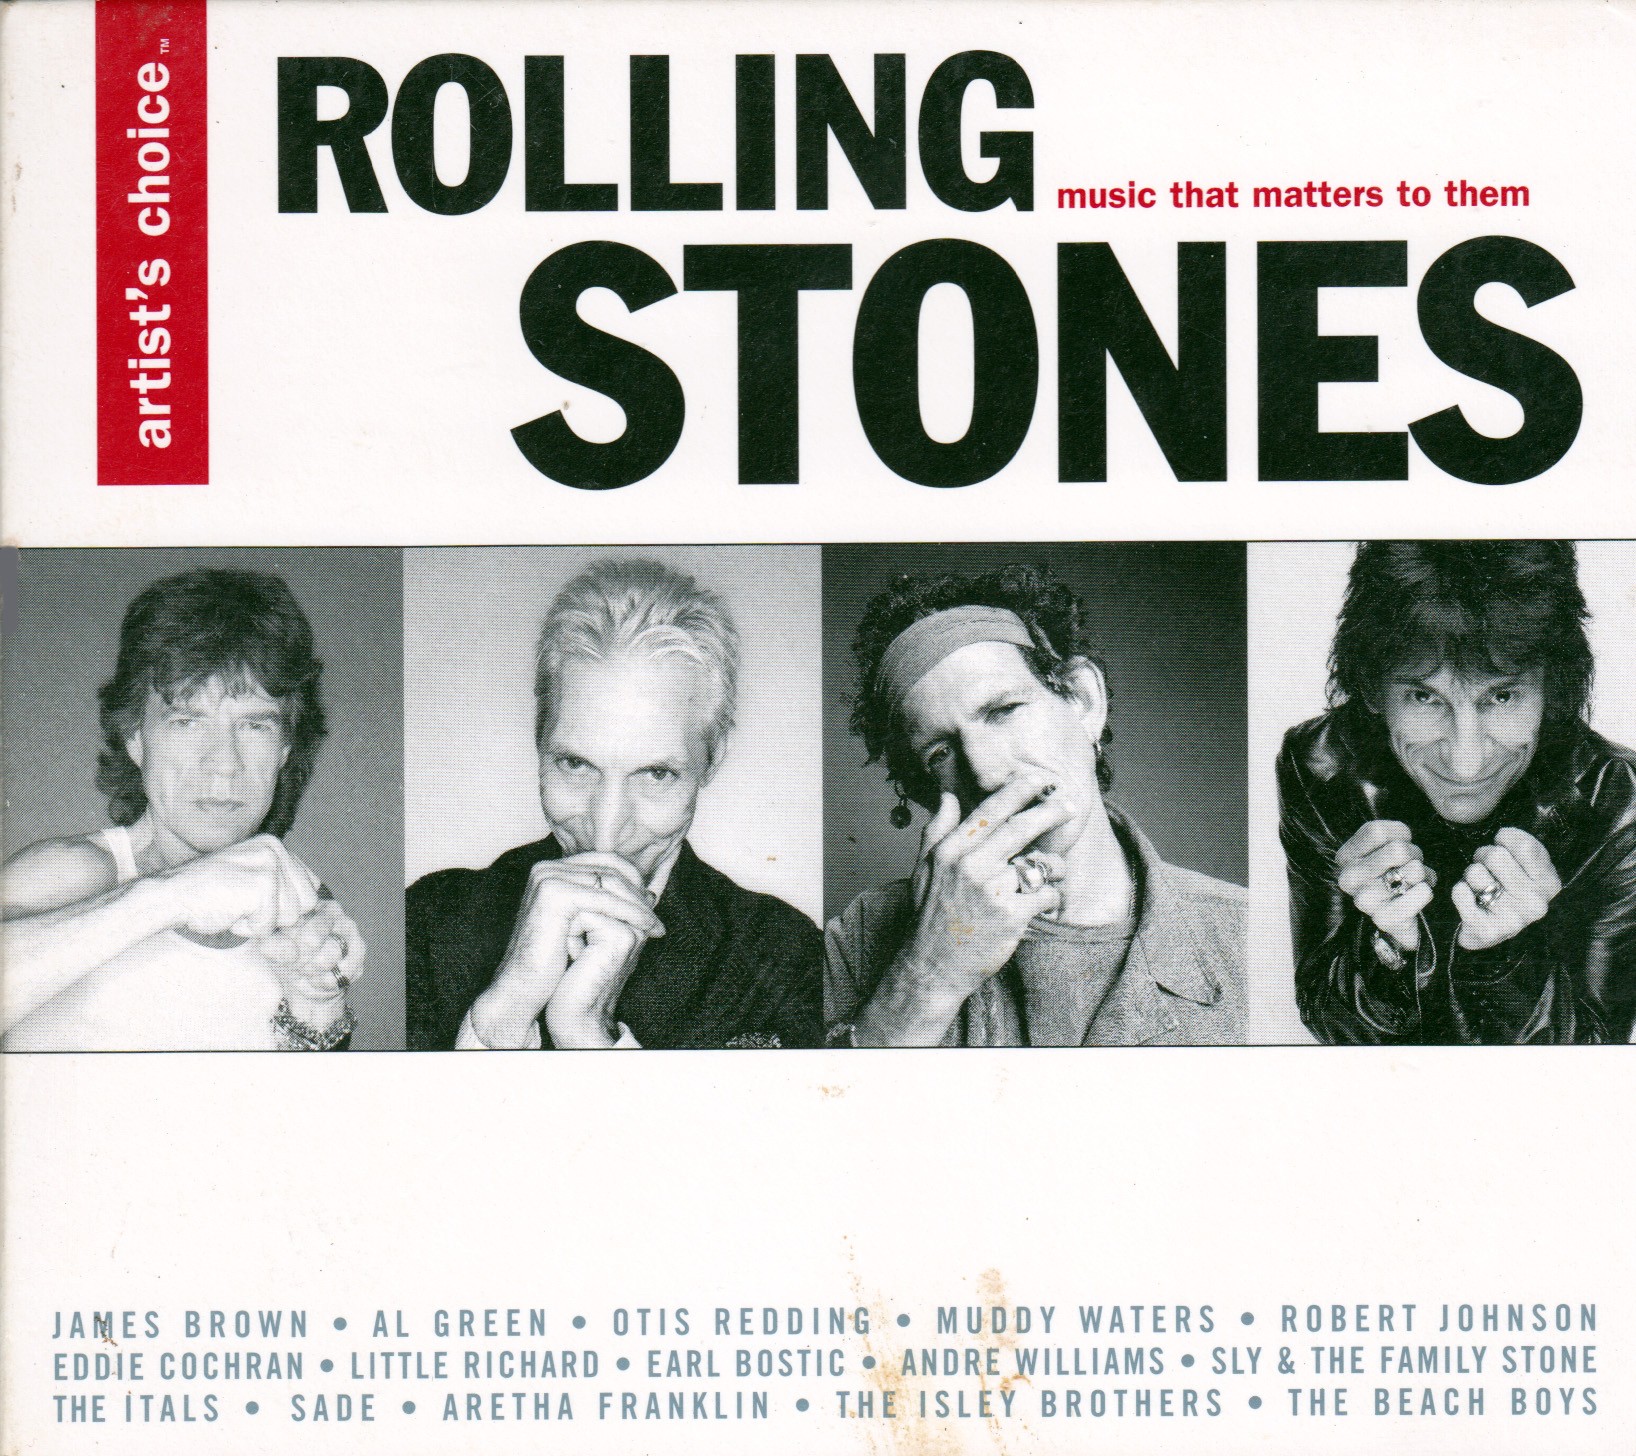 rolling stones front cover